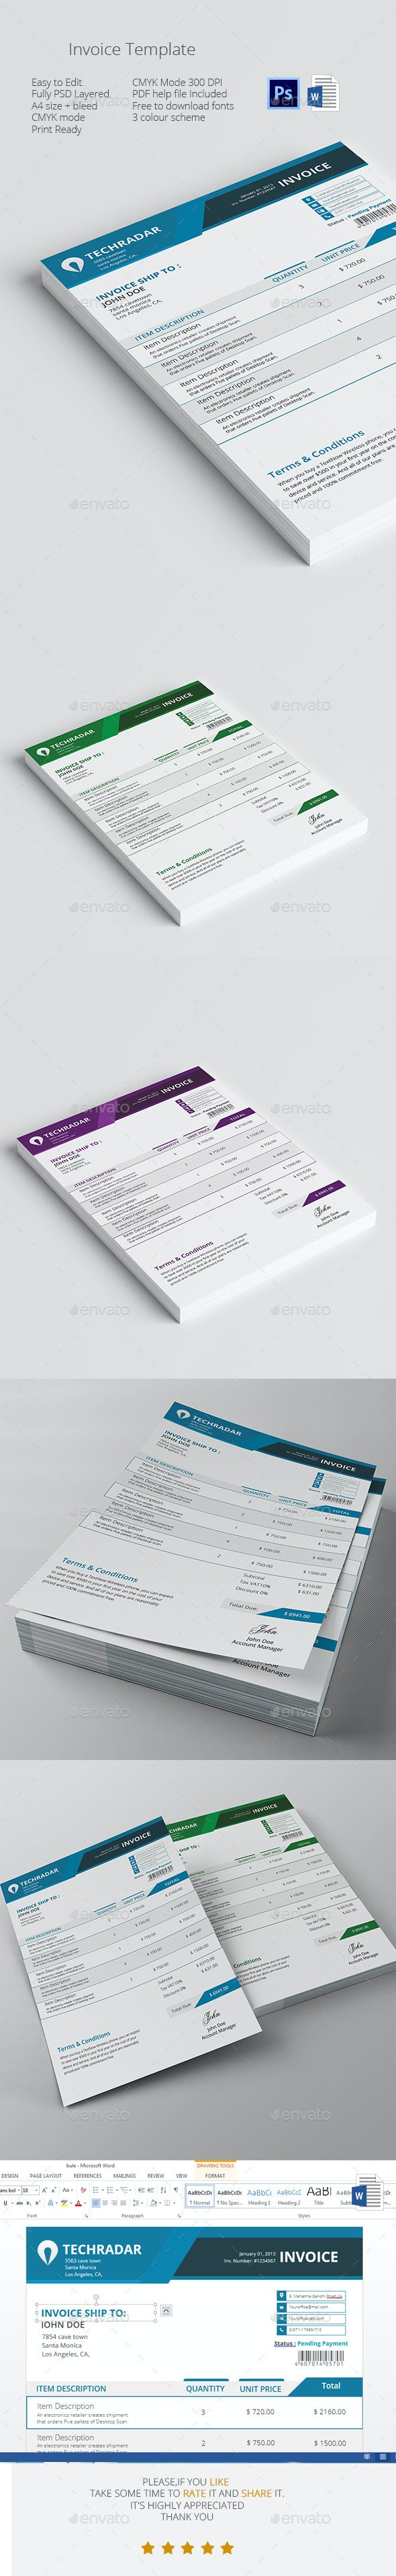 invoice template - Proposals & Invoices Stationery